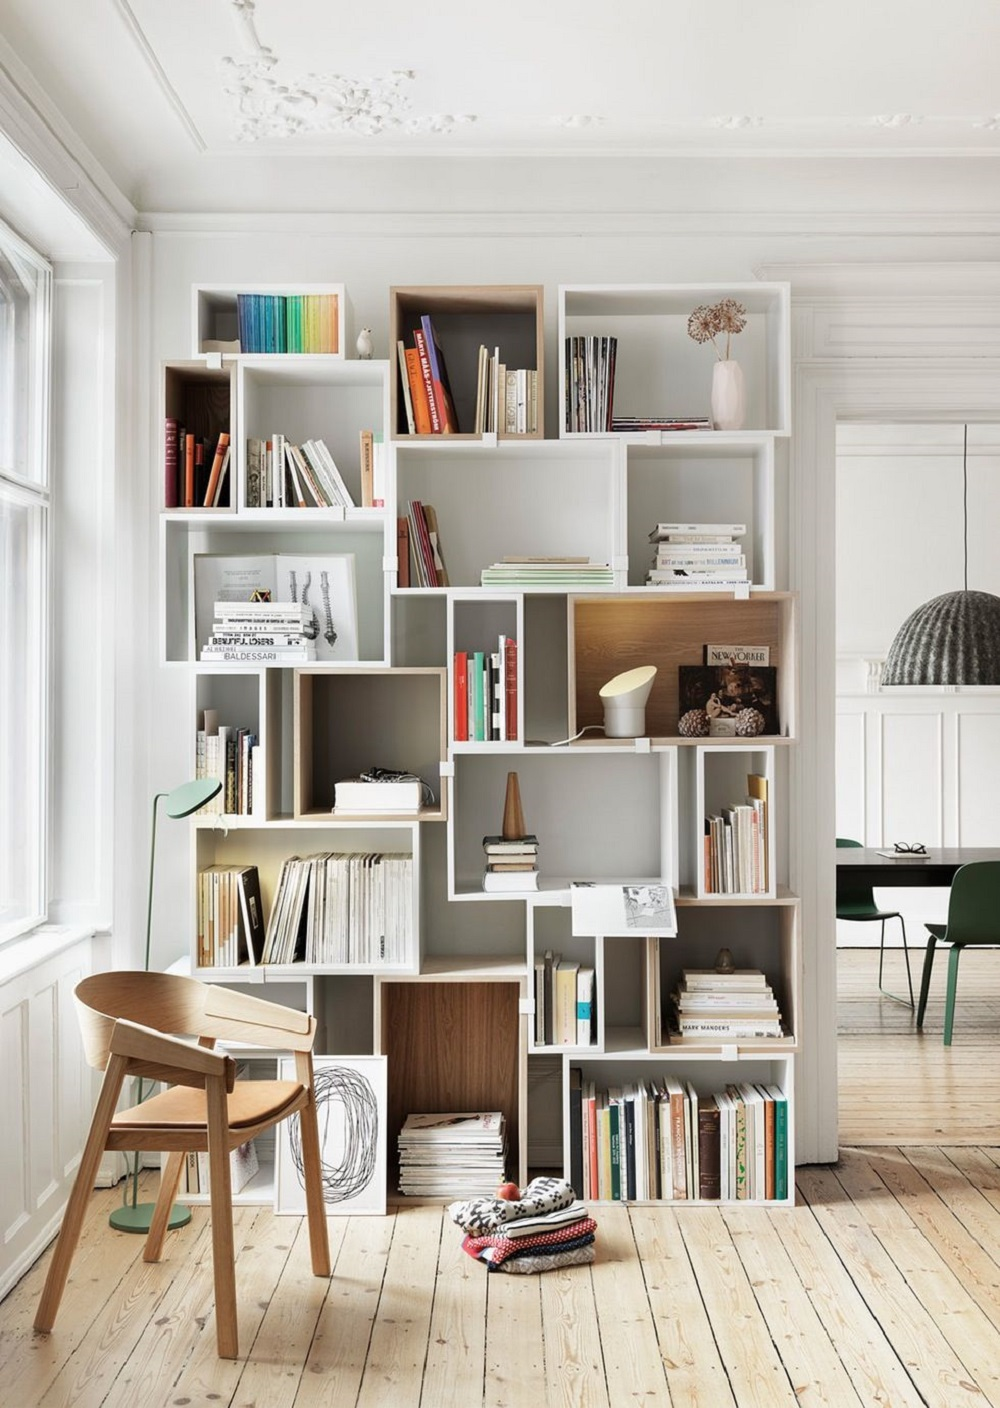 ms7 Modular shelving systems and how you can decorate them